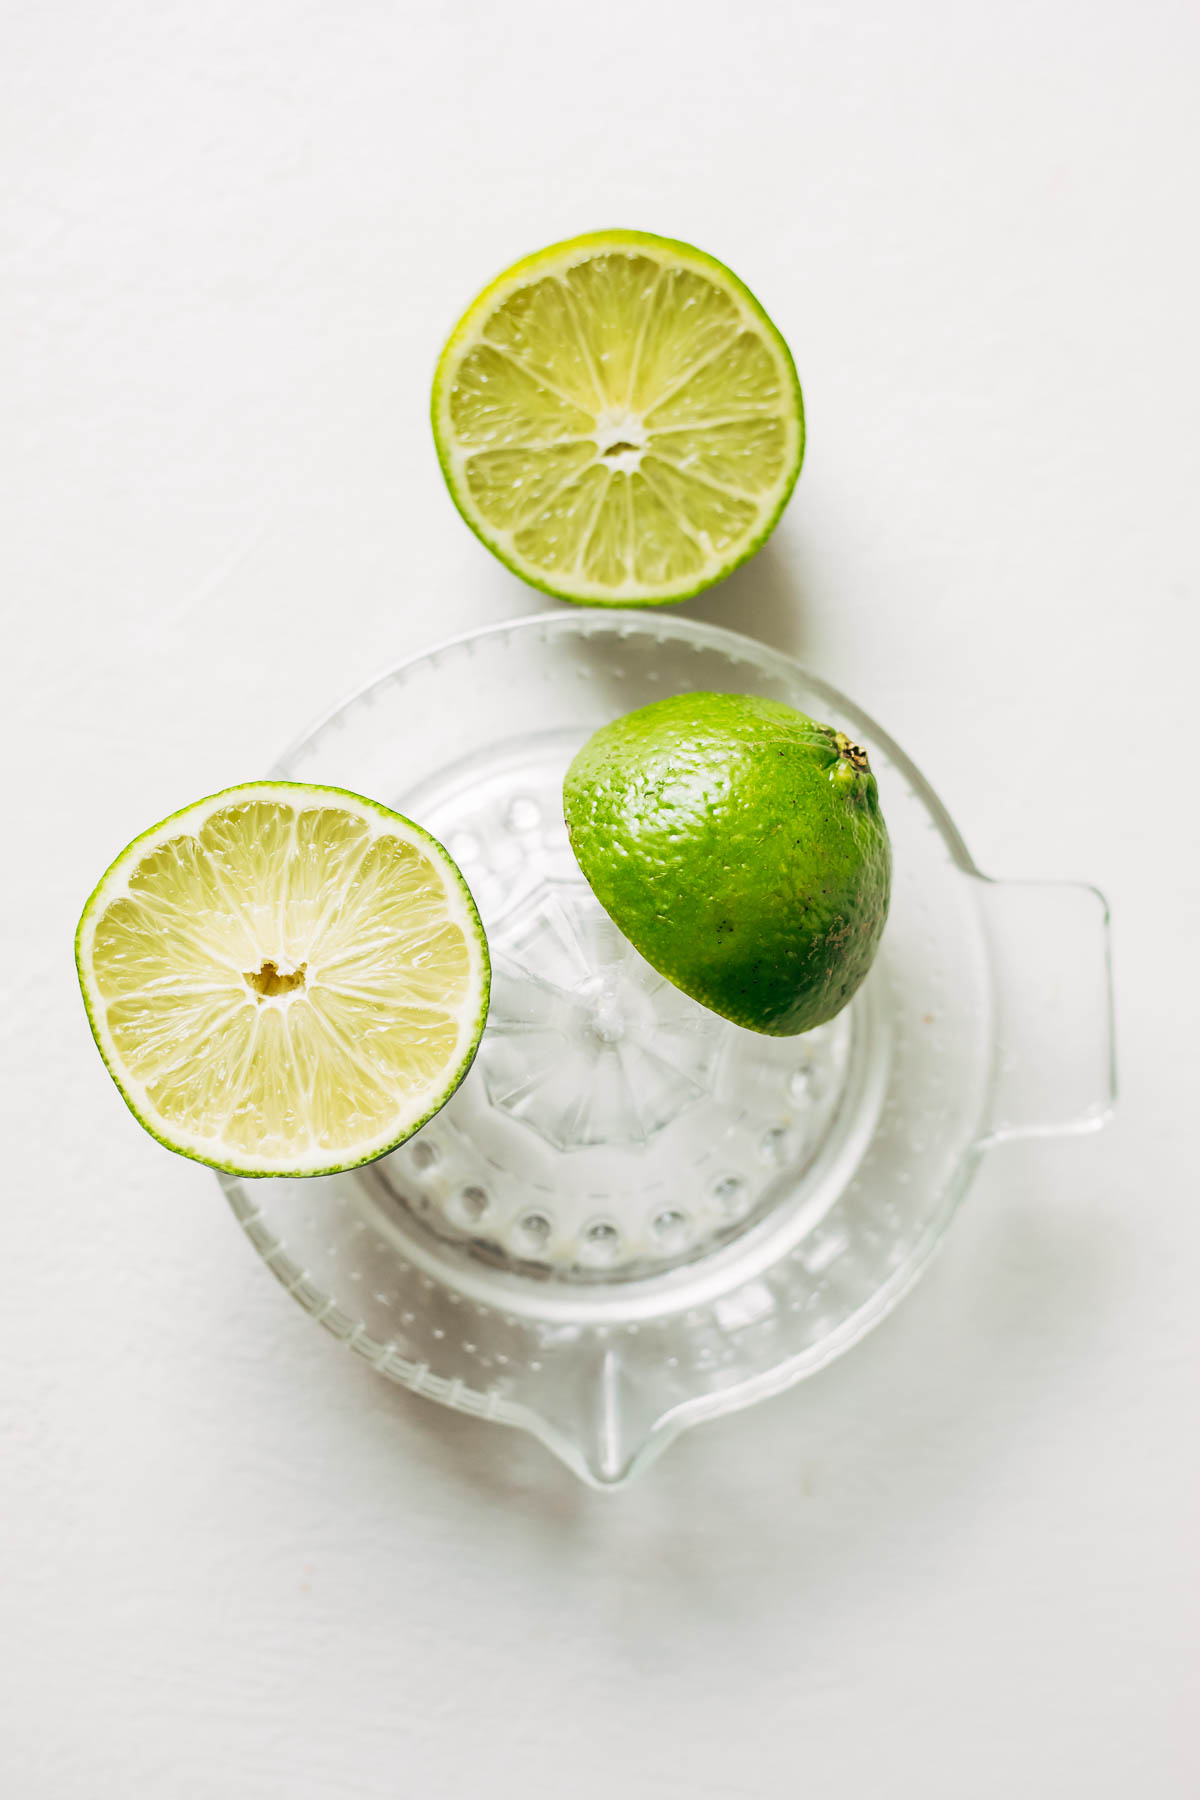 Lime halves on a glass juice extractor.